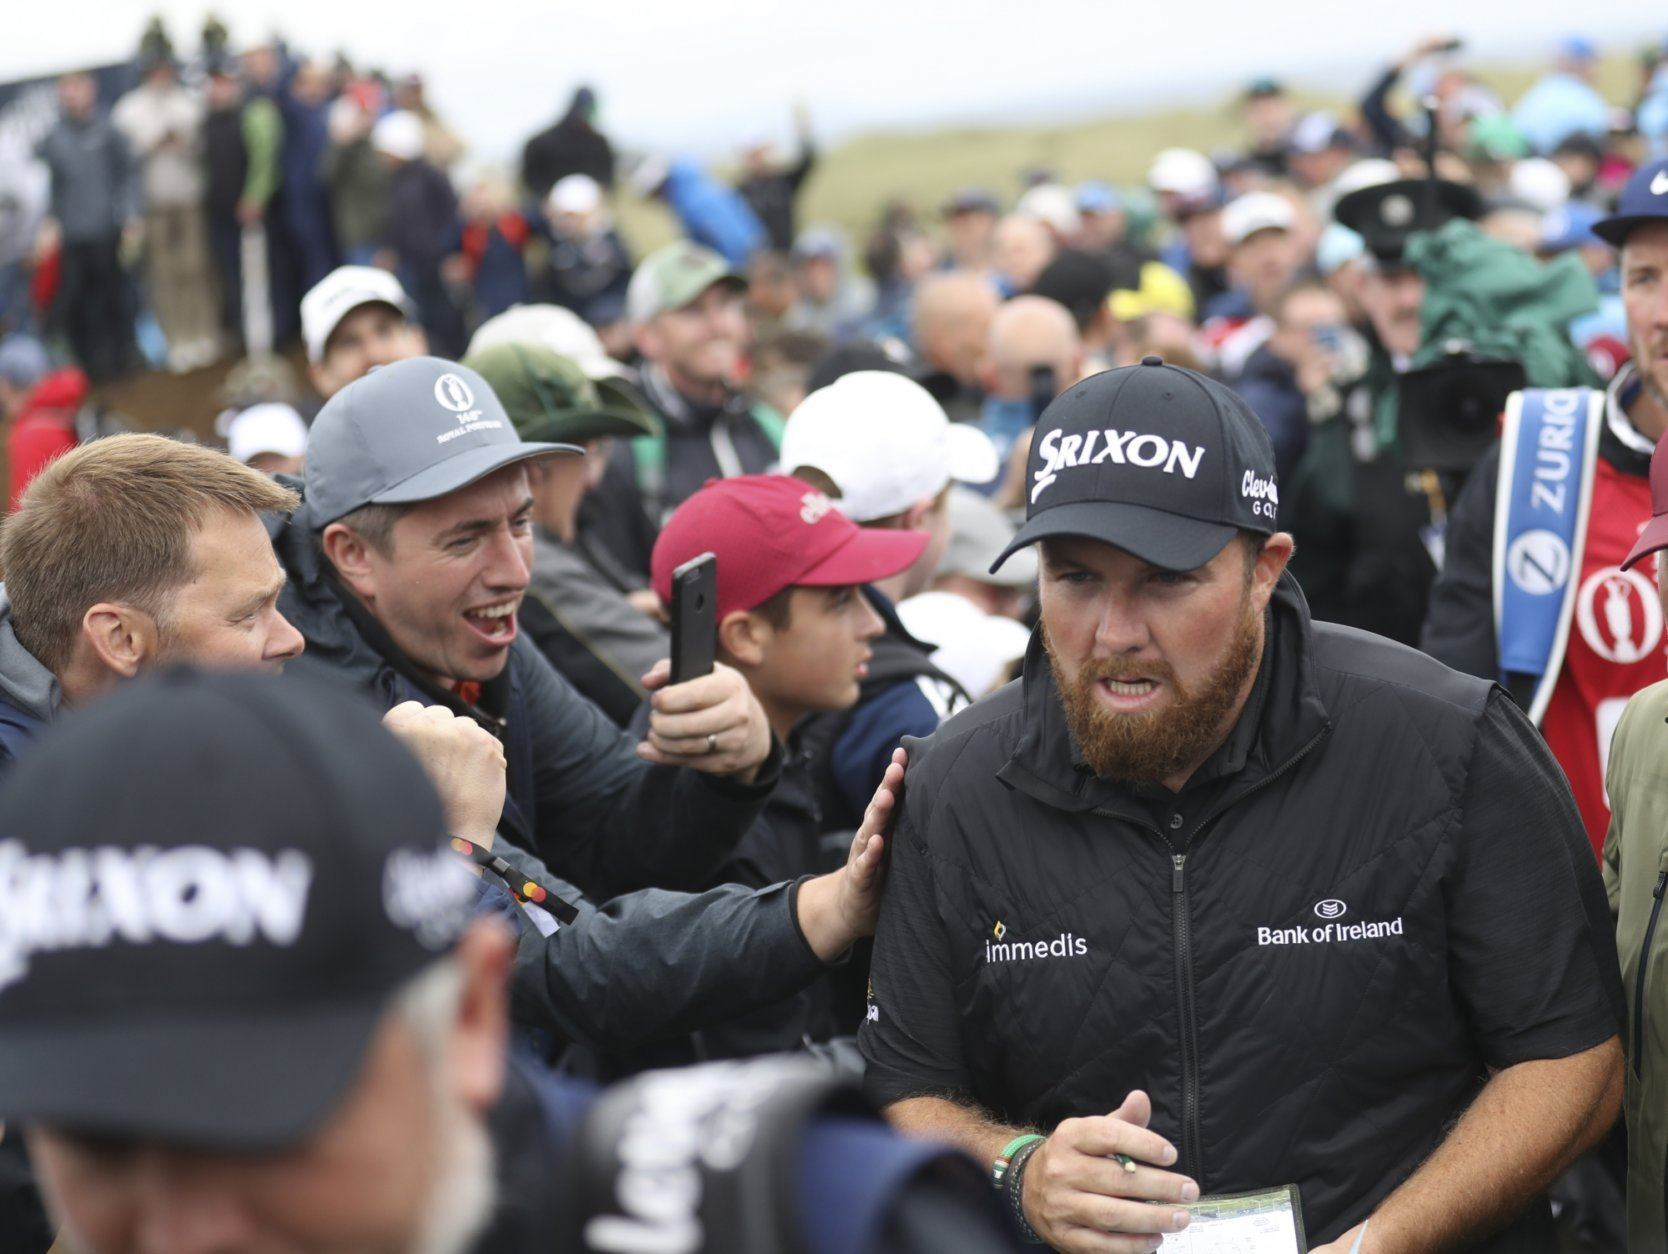 Ireland's Shane Lowry is mobbed by spectators as he walks to the 17th hole during the final round of the British Open Golf Championships at Royal Portrush in Northern Ireland, Sunday, July 21, 2019.(AP Photo/Peter Morrison)